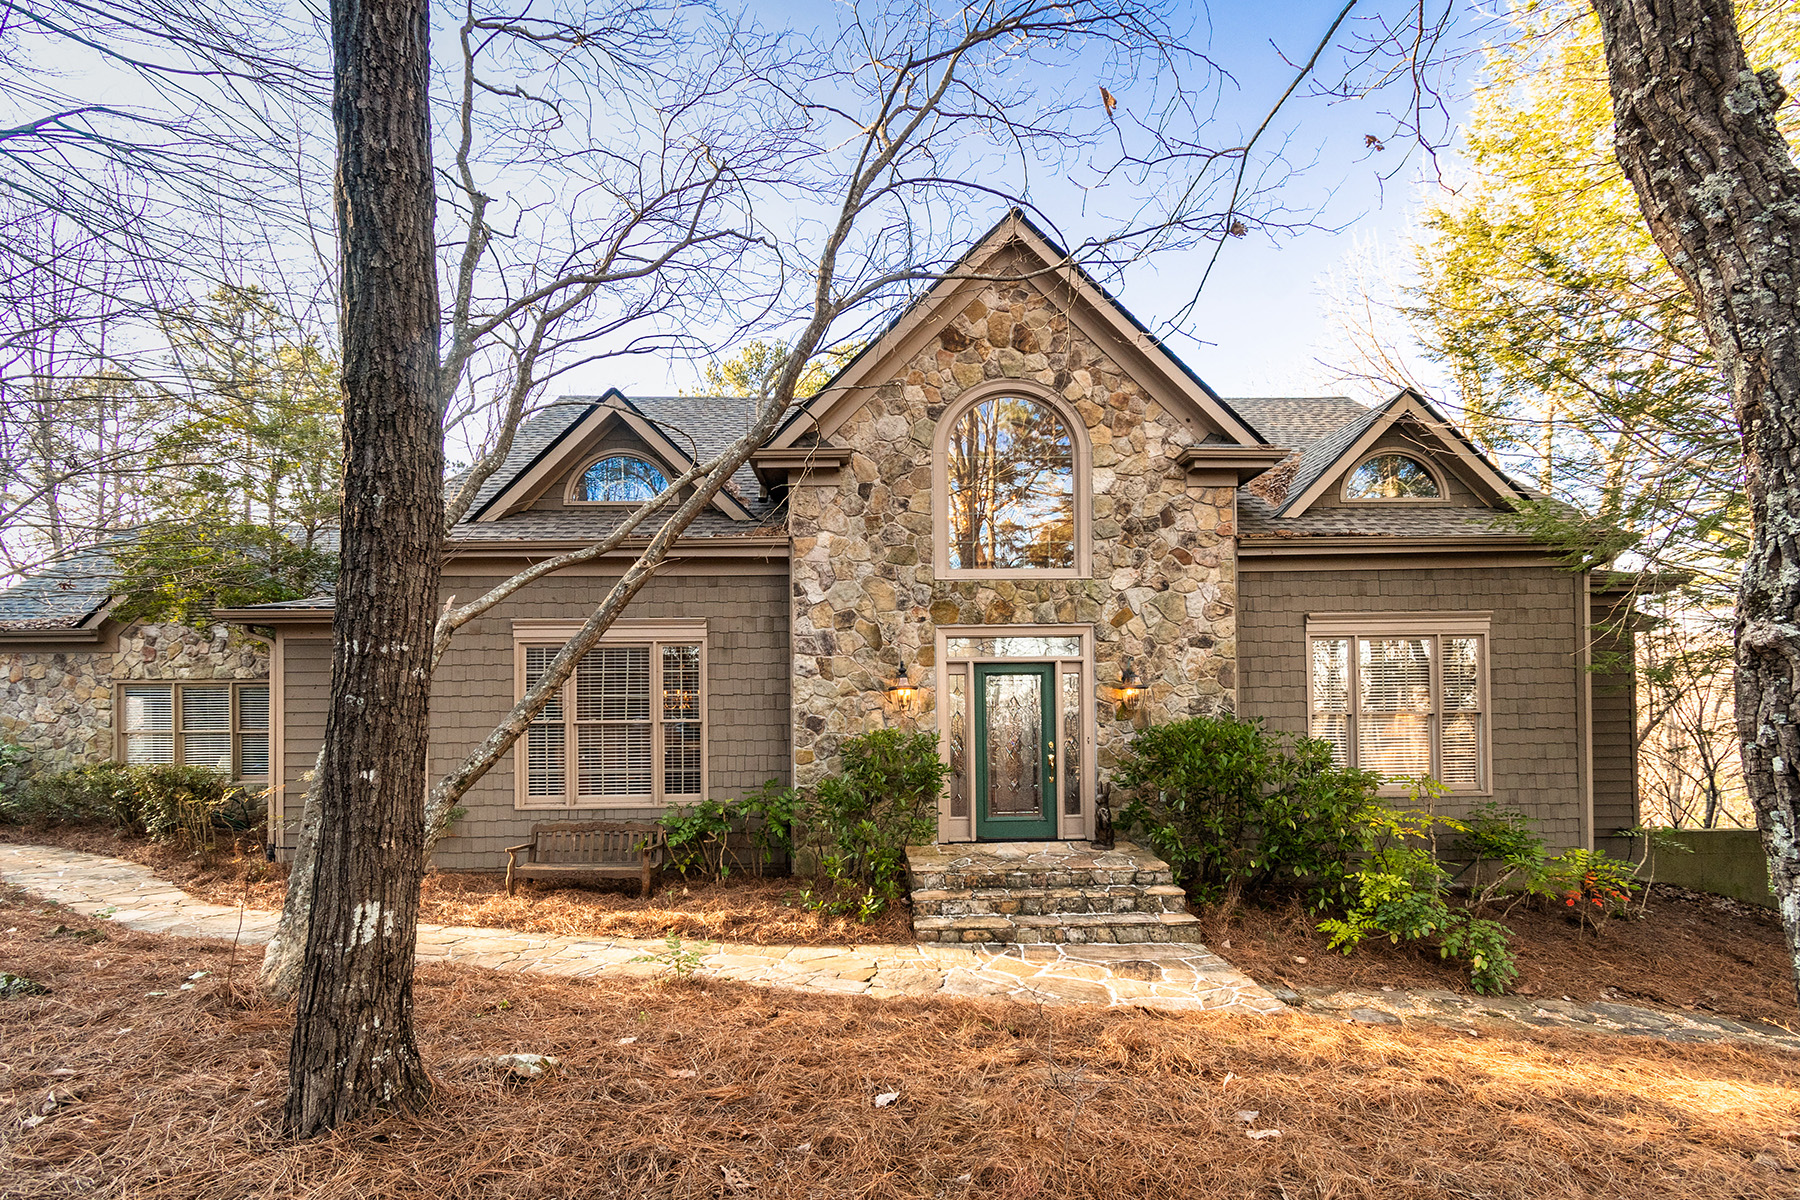 Single Family Homes for Sale at Large Mountain Home One Hour from Atlanta 100 Summit Drive, Jasper, Georgia 30143 United States